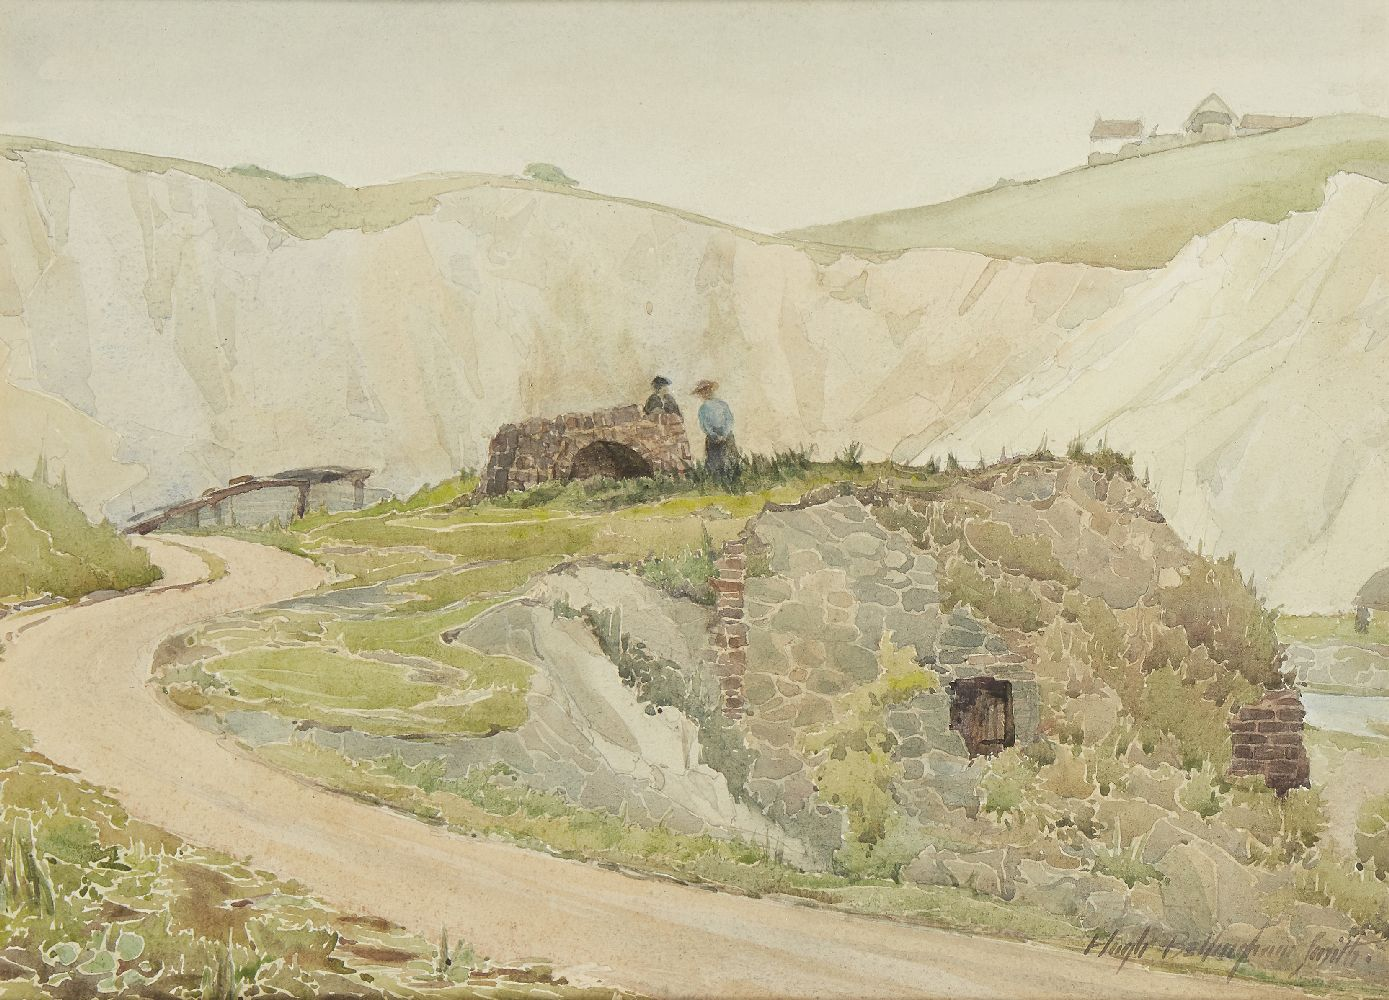 Hugh Bellingham Smith, British 1866-1922; Country lane; watercolour, signed, 24.5x34cmPlease refer - Image 3 of 3